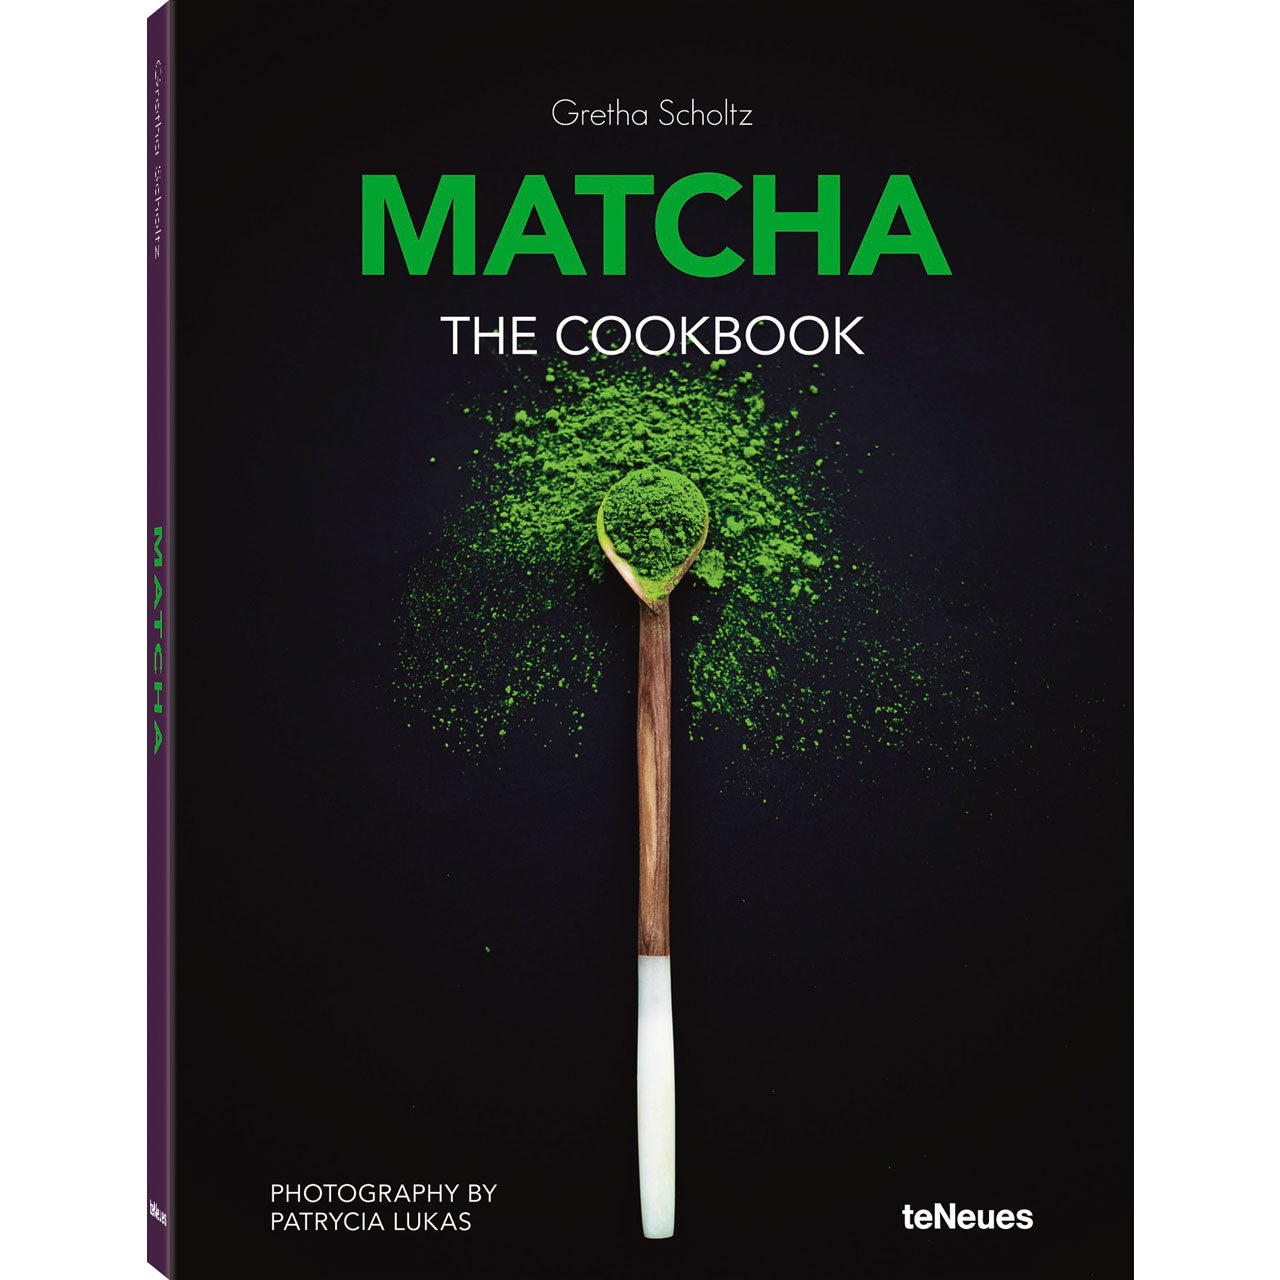 Matcha The Cookbook by Gretha Scholtz